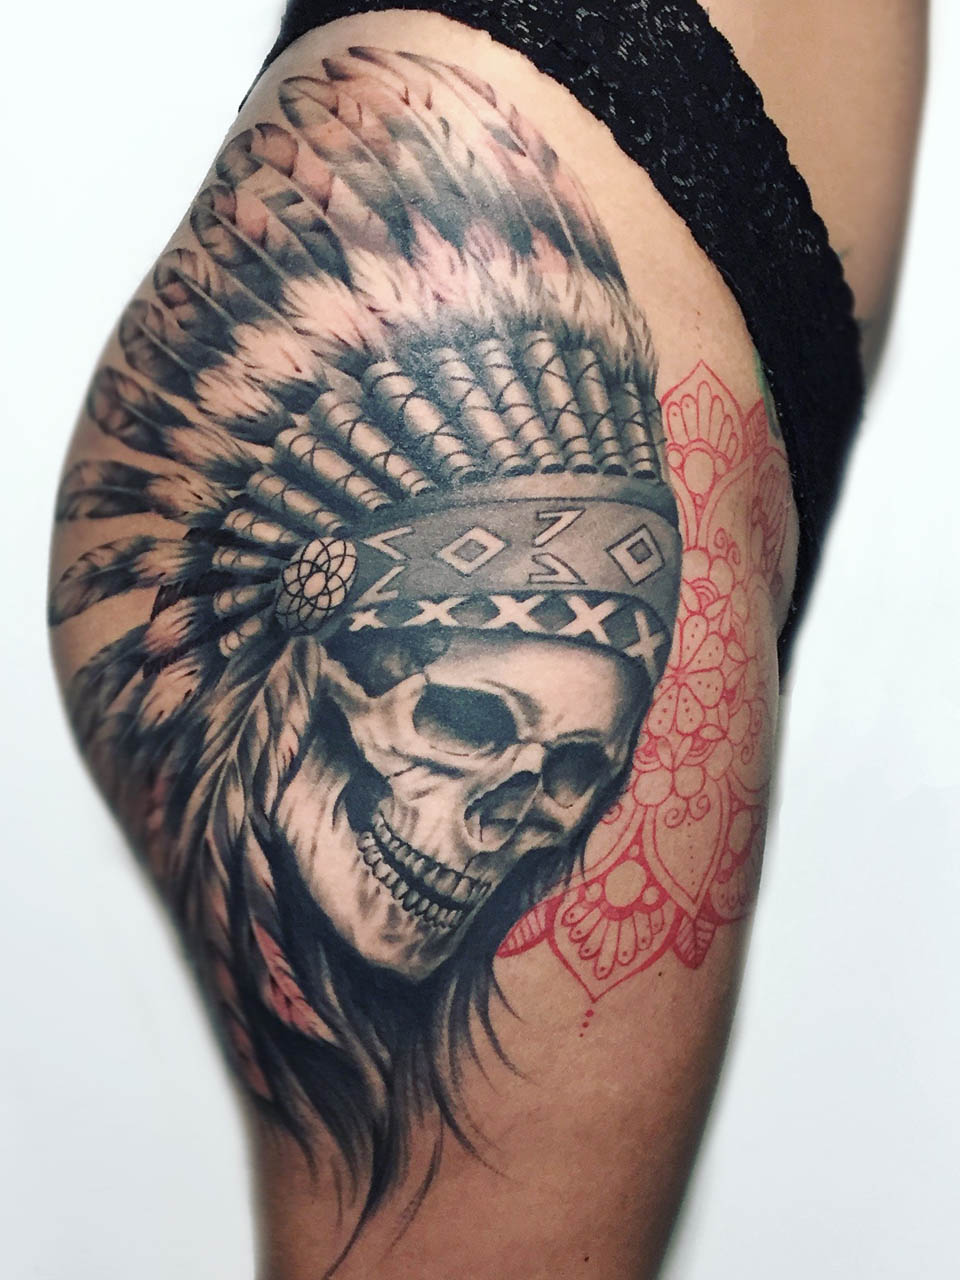 kevin-deuso-tattoo-001-black-upper-thigh-bottom